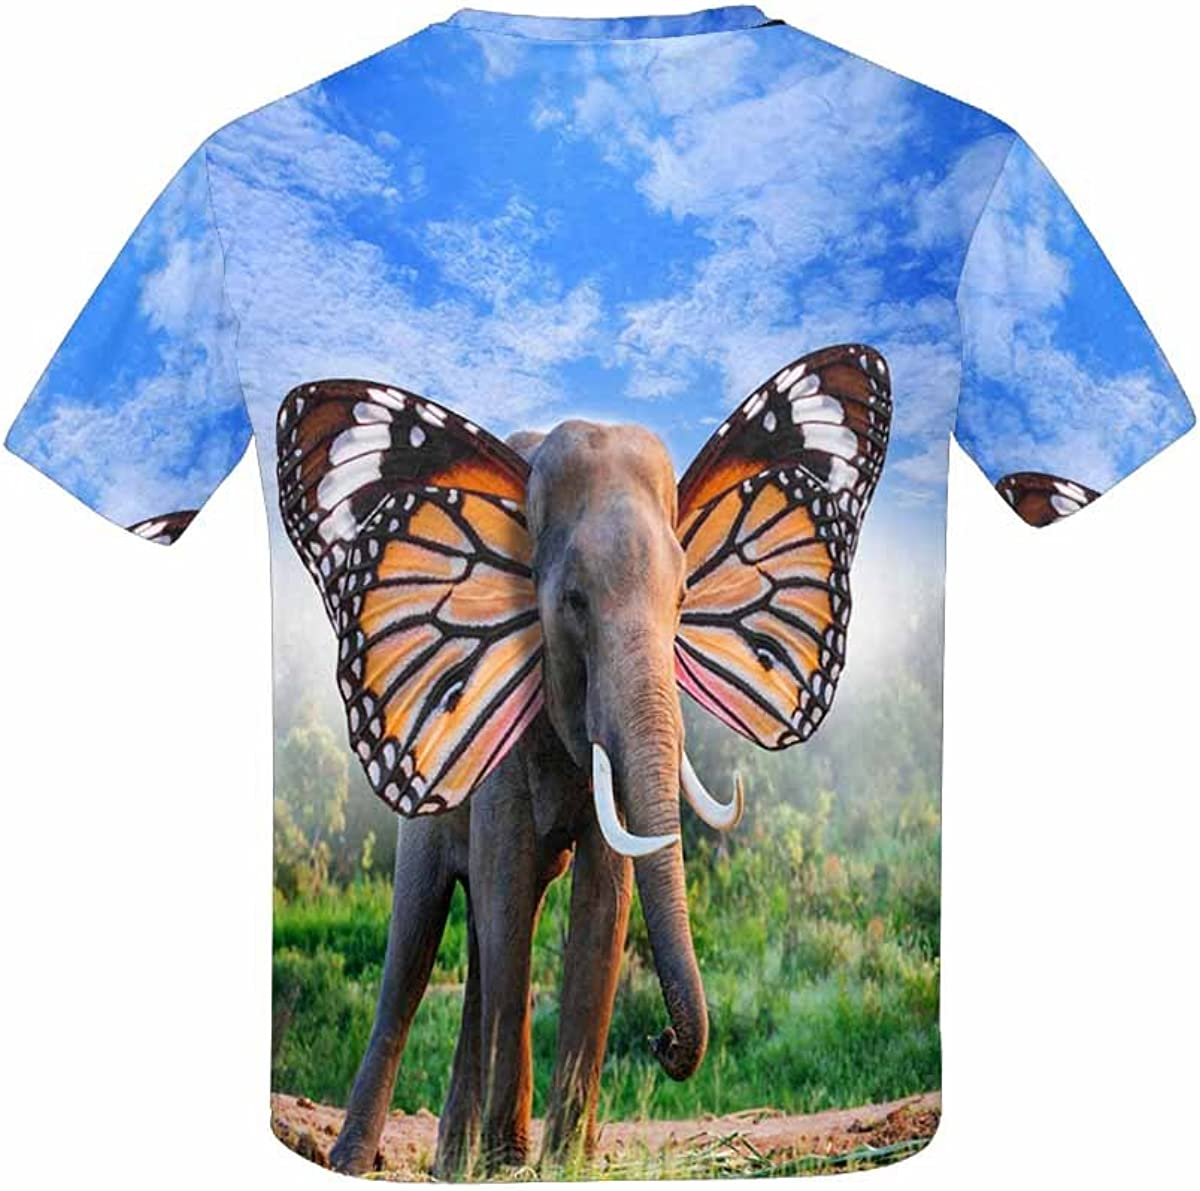 XS-XL INTERESTPRINT Elephant Portrait with Butterfly Wings Kids T-Shirt